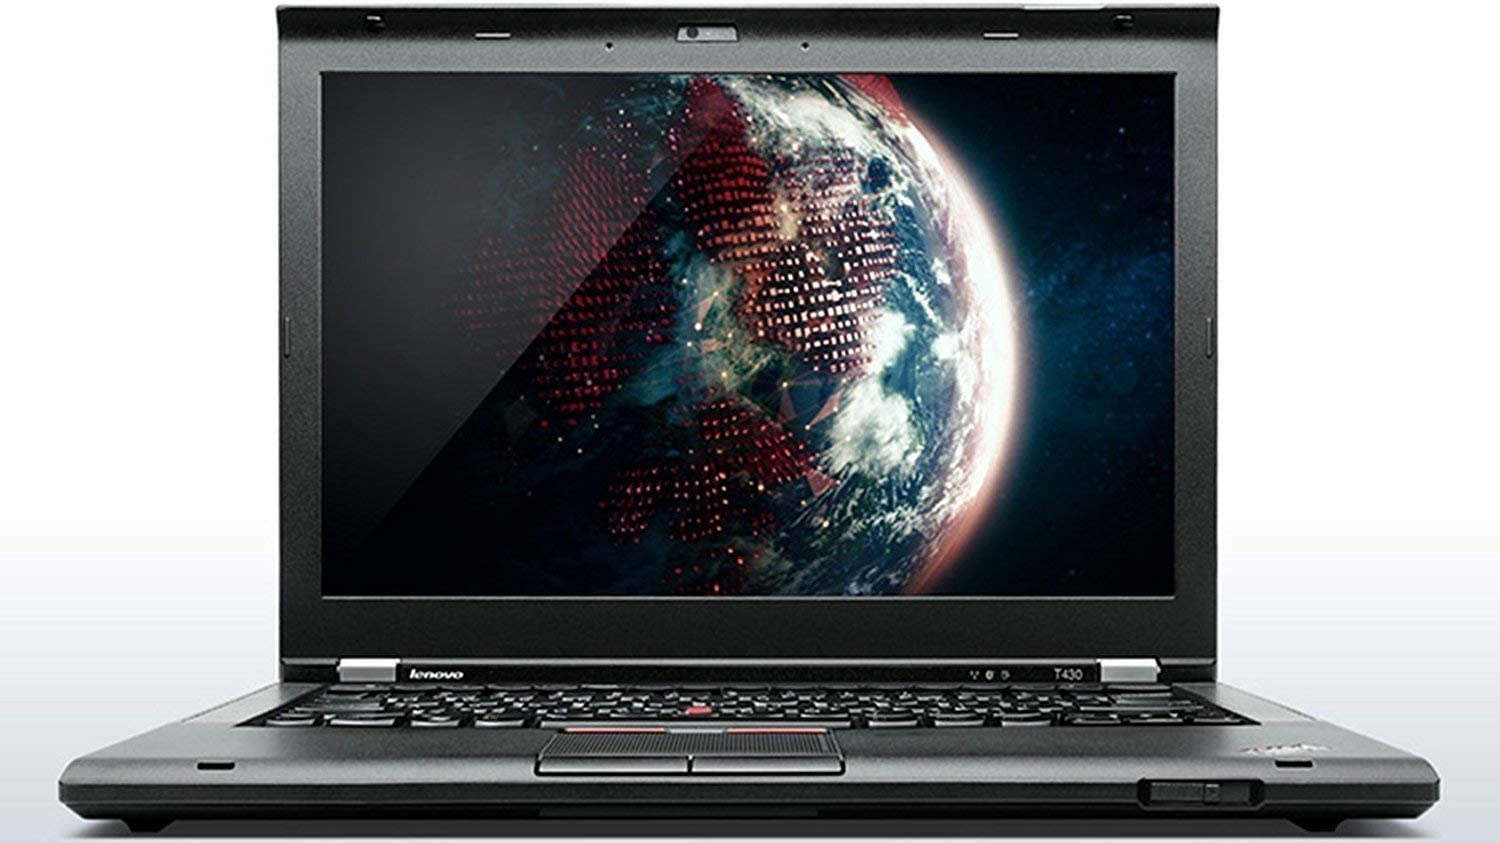 Lenovo Thinkpad T430 Built Business Laptop Computer Intel Dual Core i5 Up to 3.3 Ghz Processor, 8GB Memory, 320GB HDD, Windows 10 Professional - Bulk Packaging Refurbished